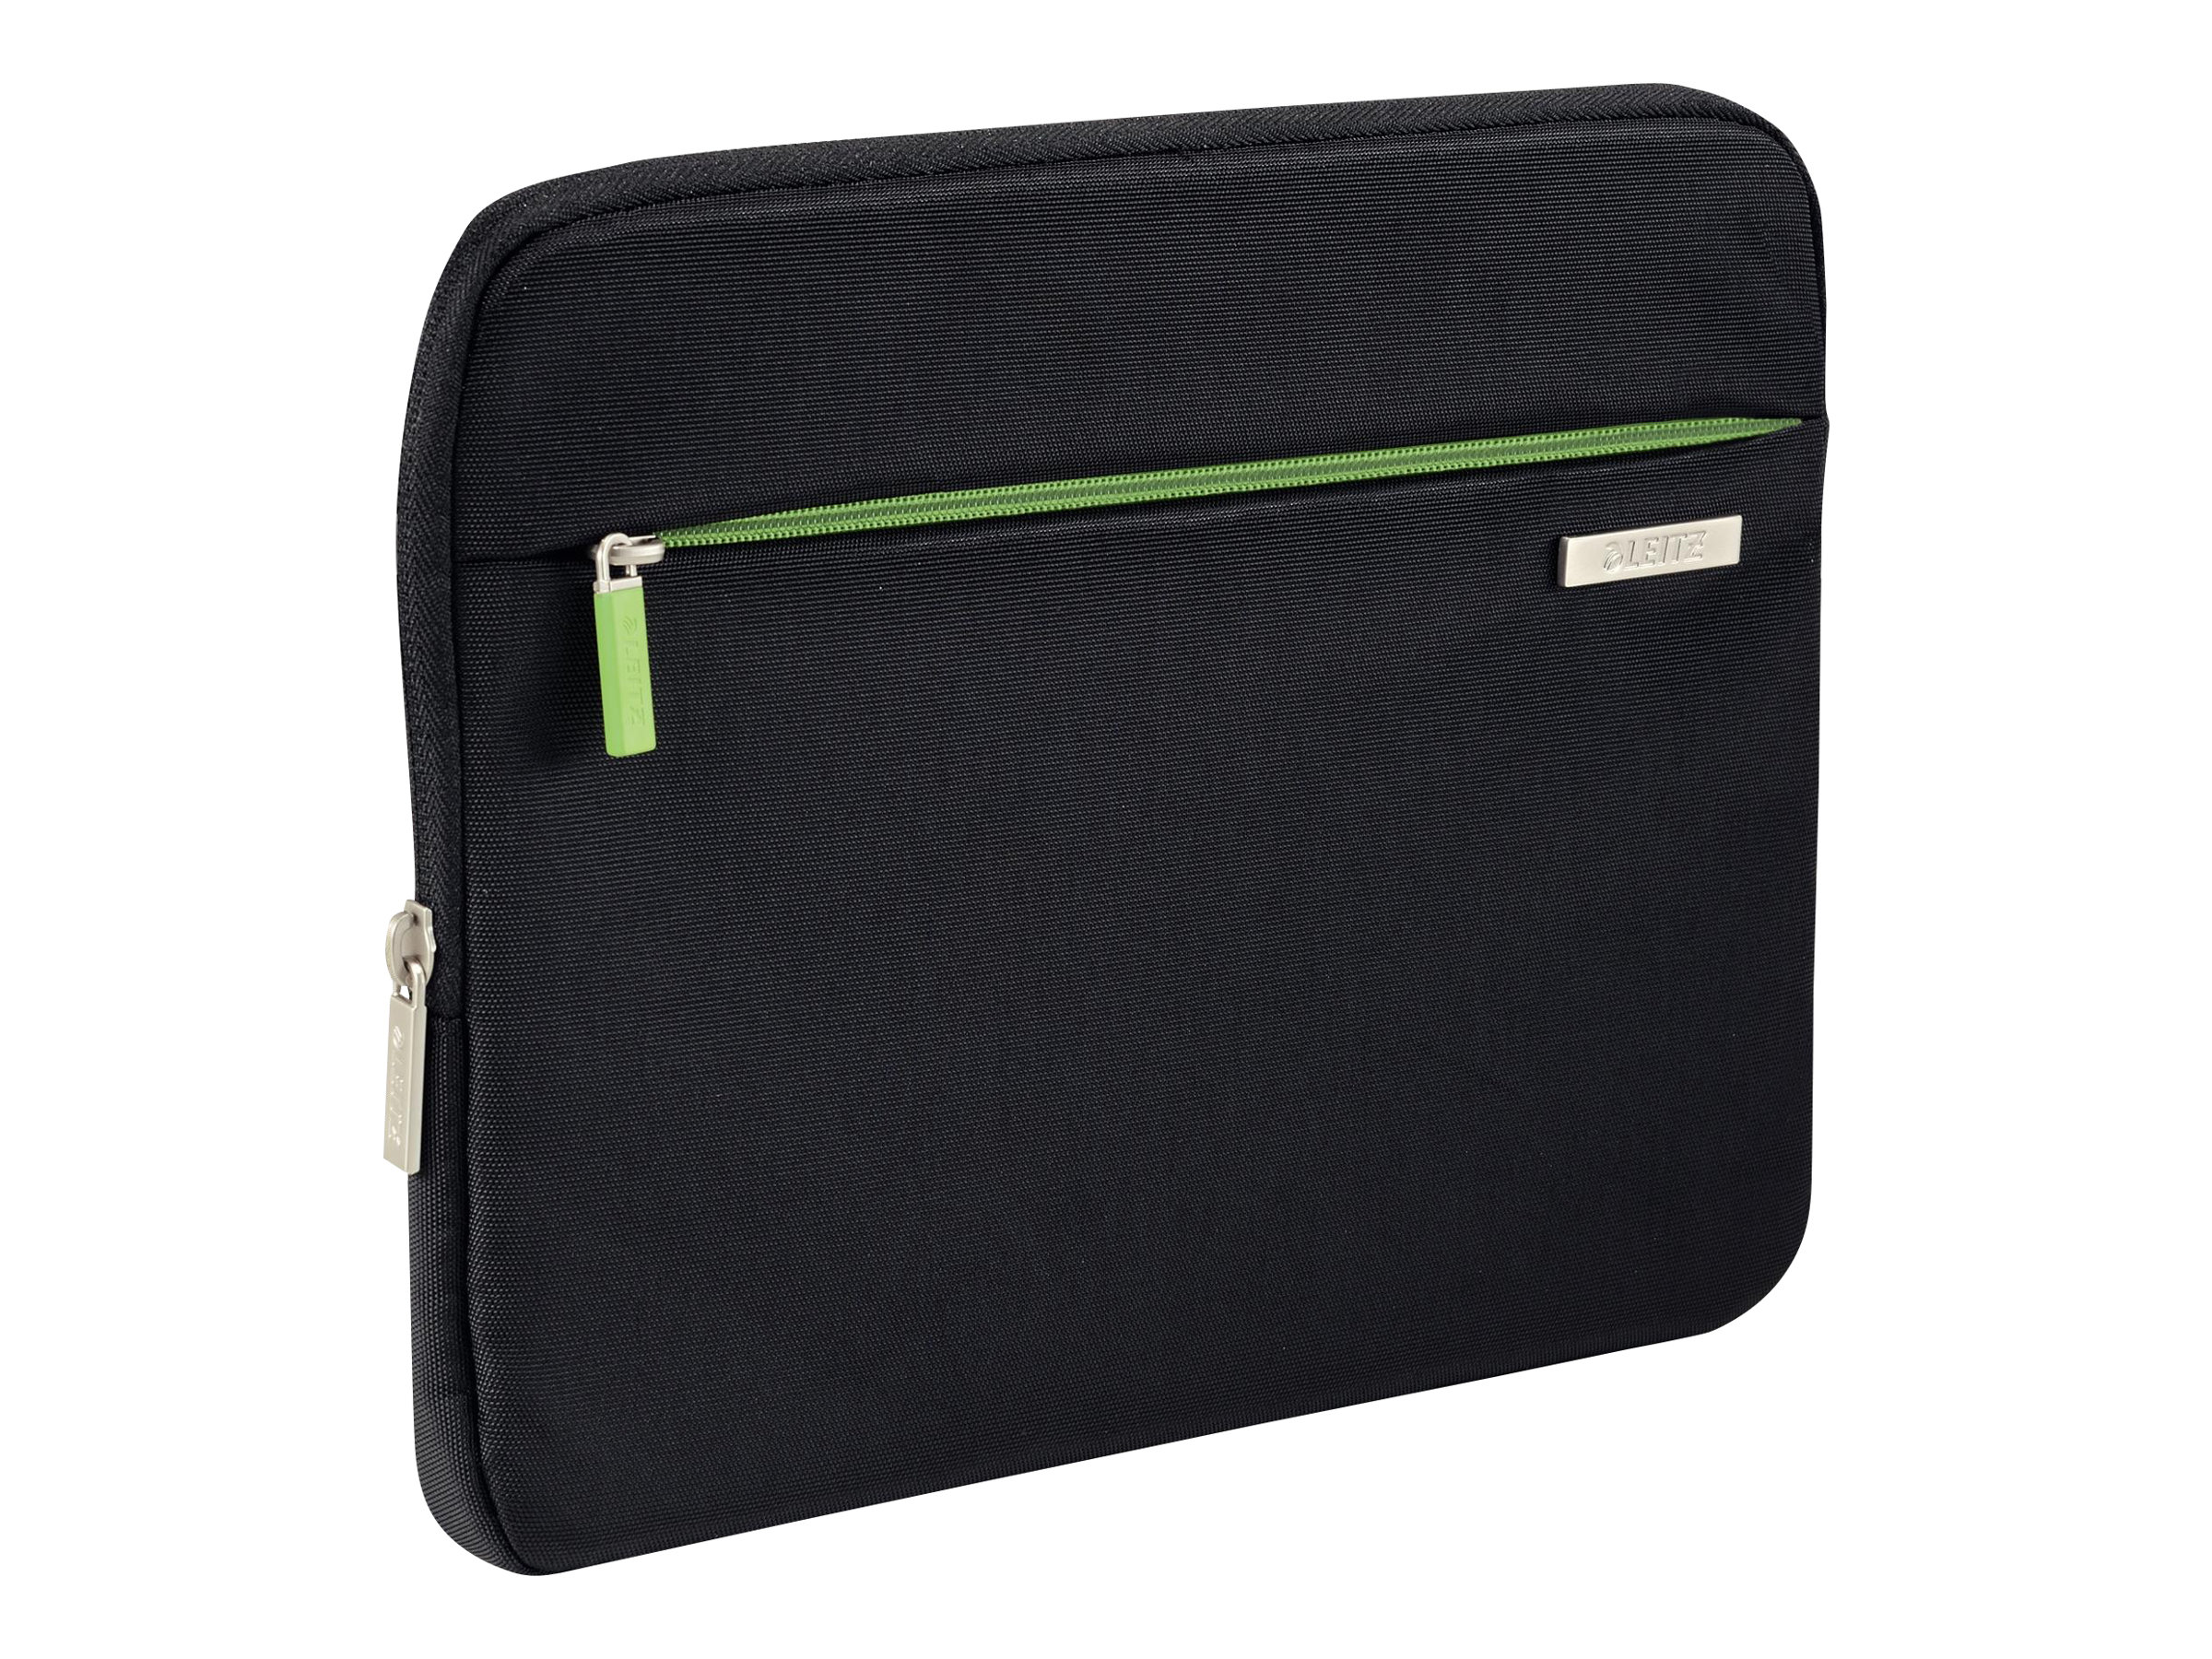 Leitz Complete Tablet Power Sleeve - Schutzhülle für Tablet / eBook-Reader - Metall, Polyester - Schwarz